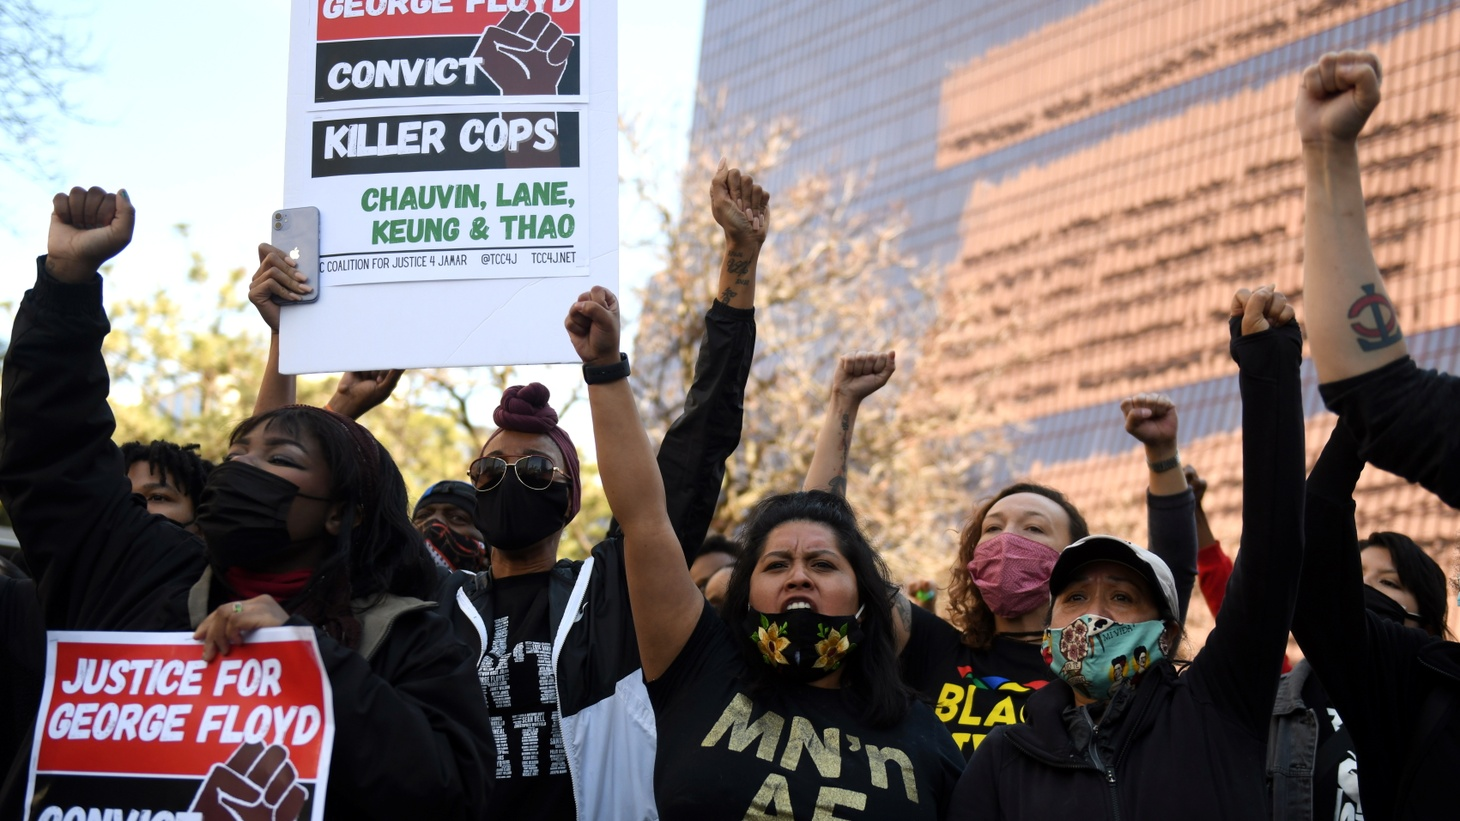 Demonstrators assemble behind the Hennepin County Government Center in downtown Minneapolis, Minnesota, U.S. March 8, 2021. The trial of Derek Chauvin, the former Minneapolis police officer accused of killing George Floyd, starts this week.